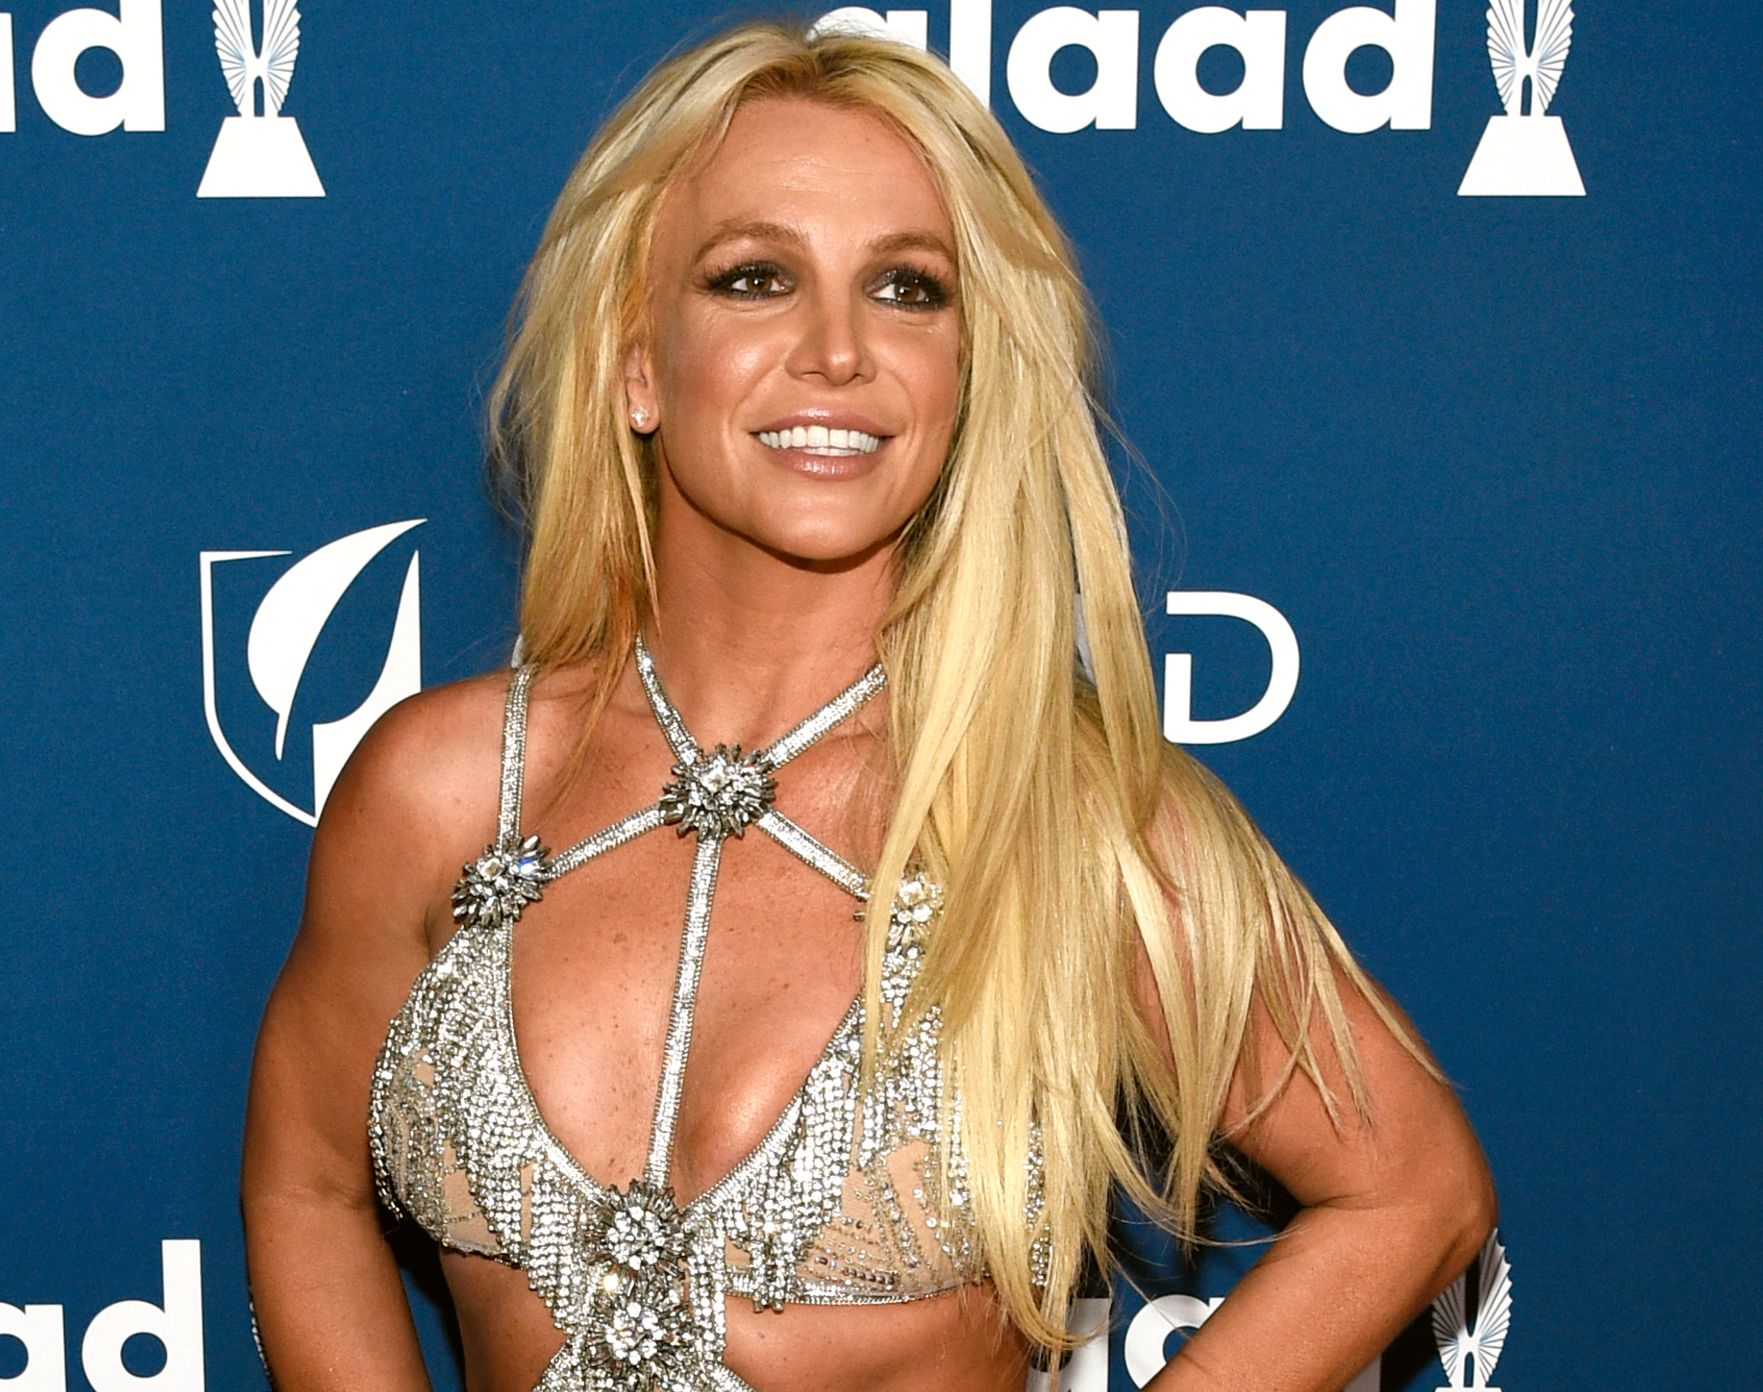 POPIKON: Britney Spears, her på GLAD Awards i Beverly Hills i april i fjor.